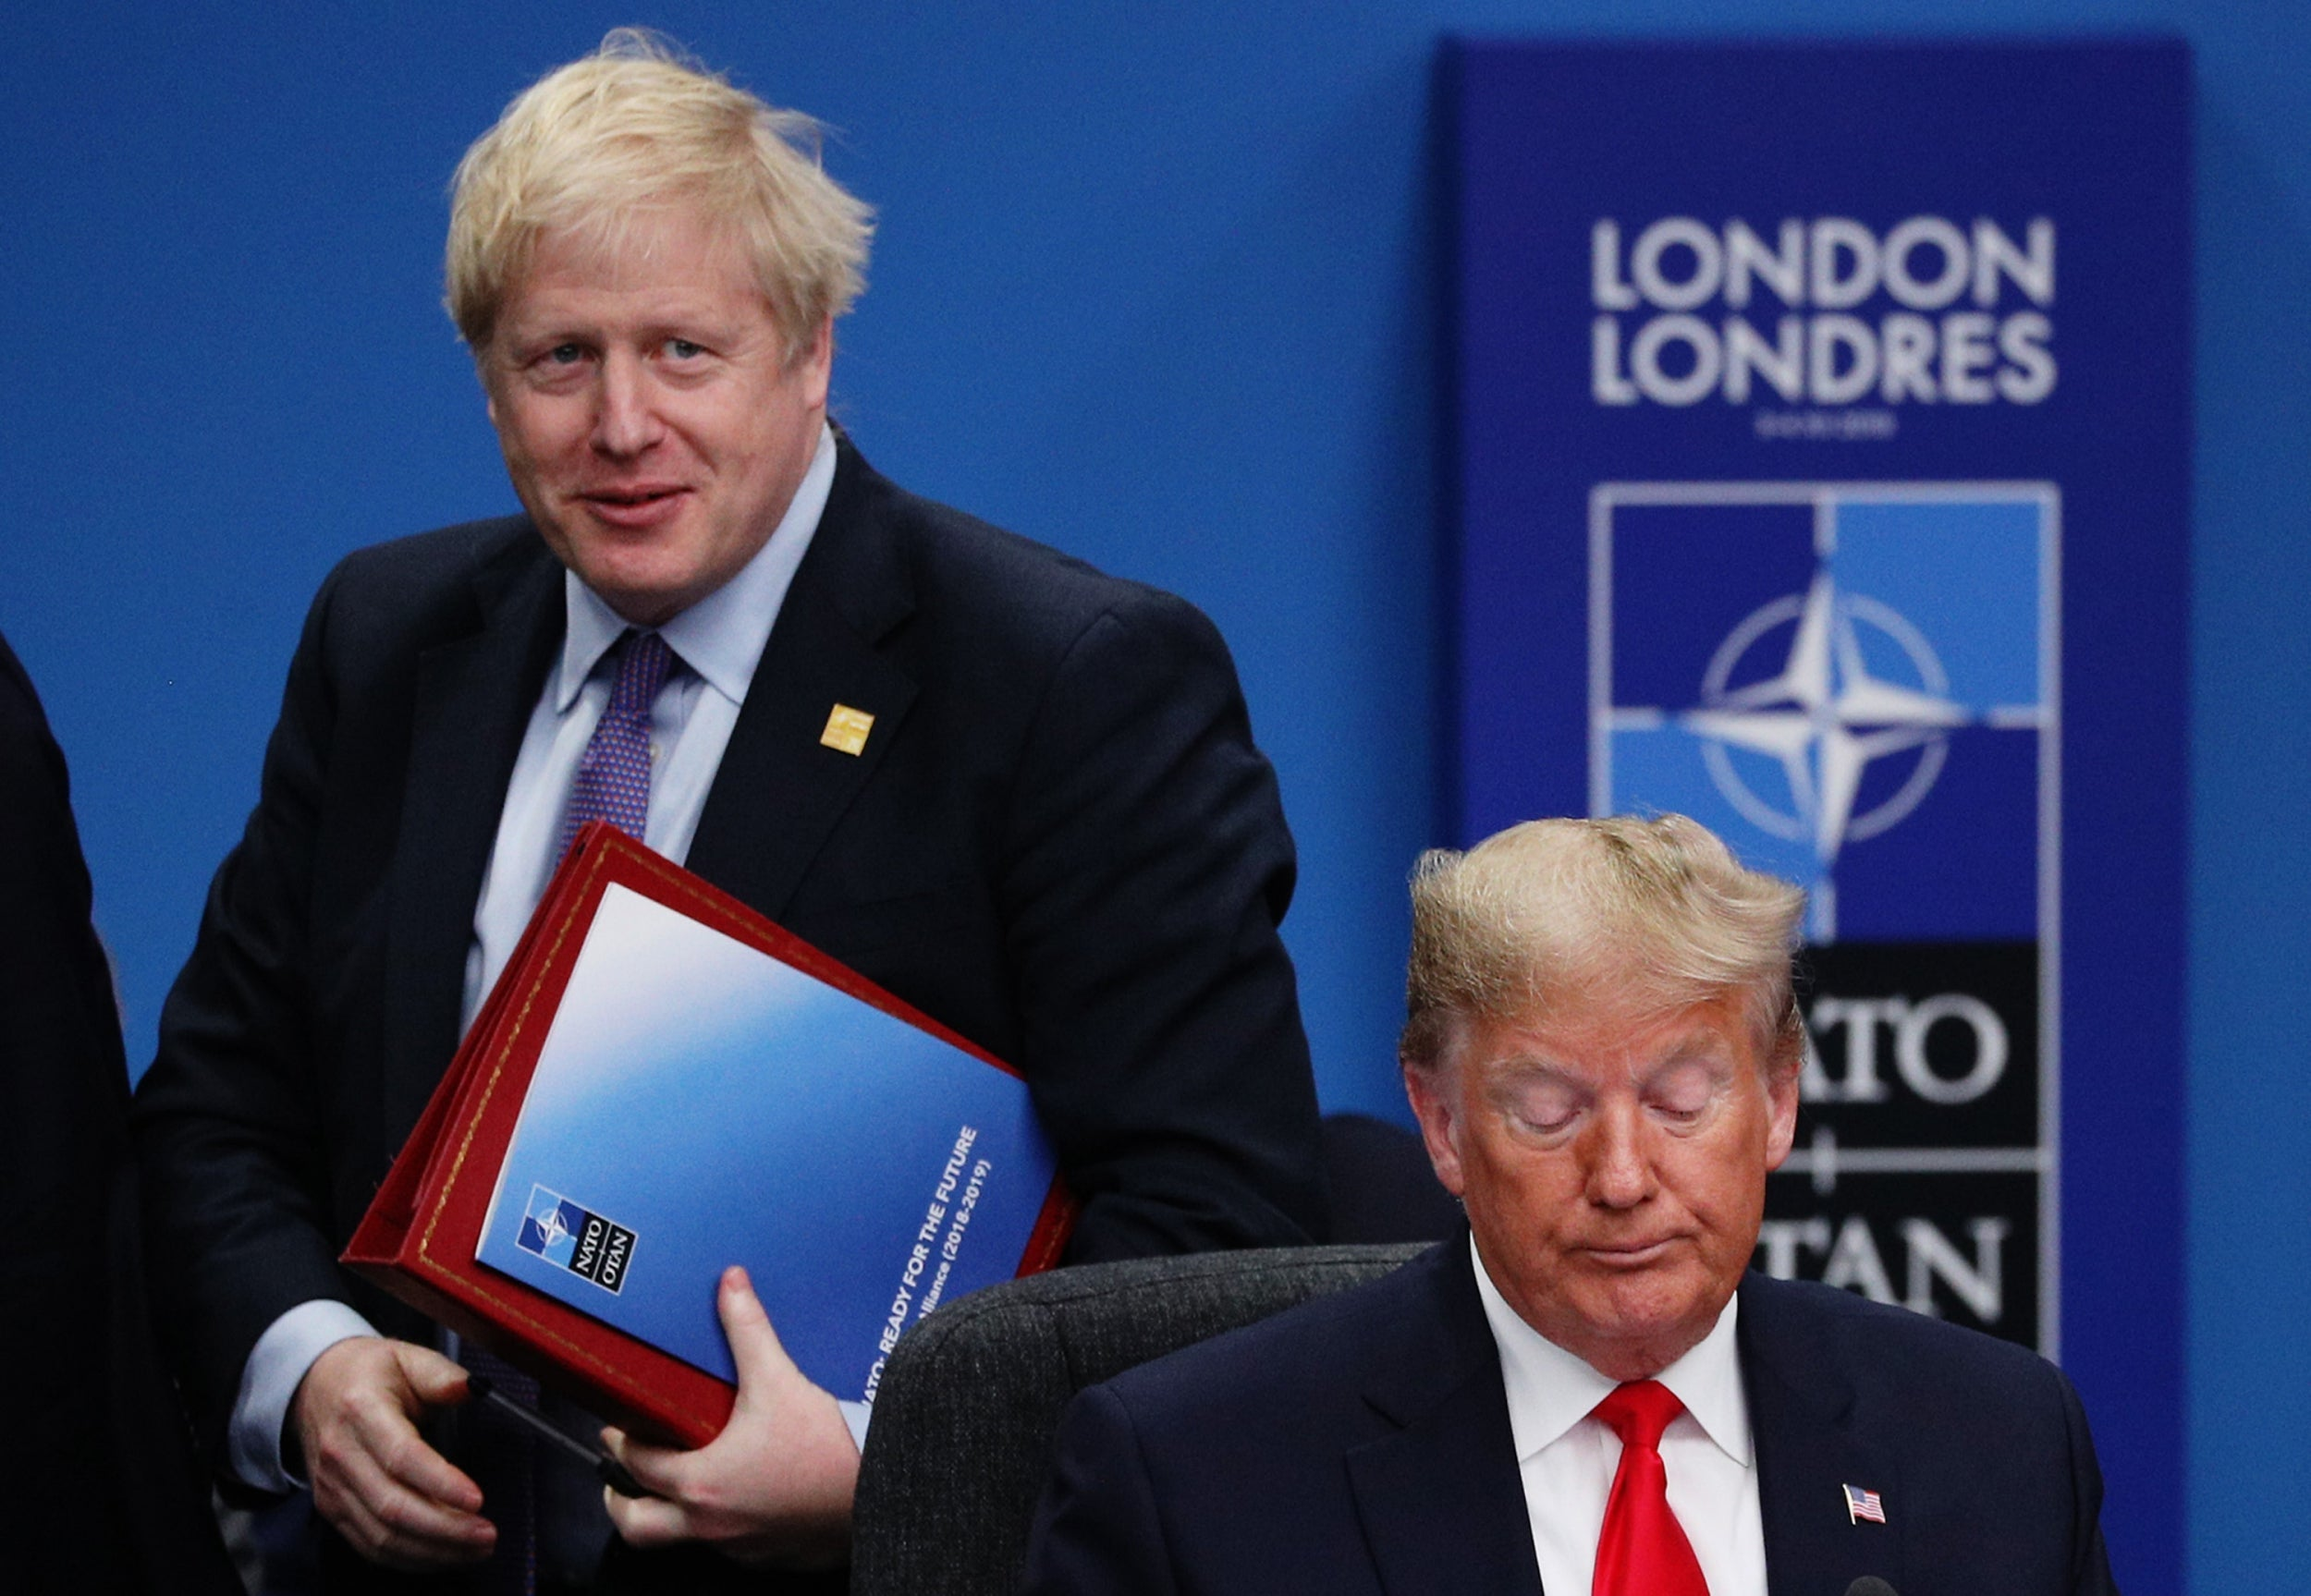 Boris Johnson urged to end 'silence' and condemn Trump's response to George Floyd protests